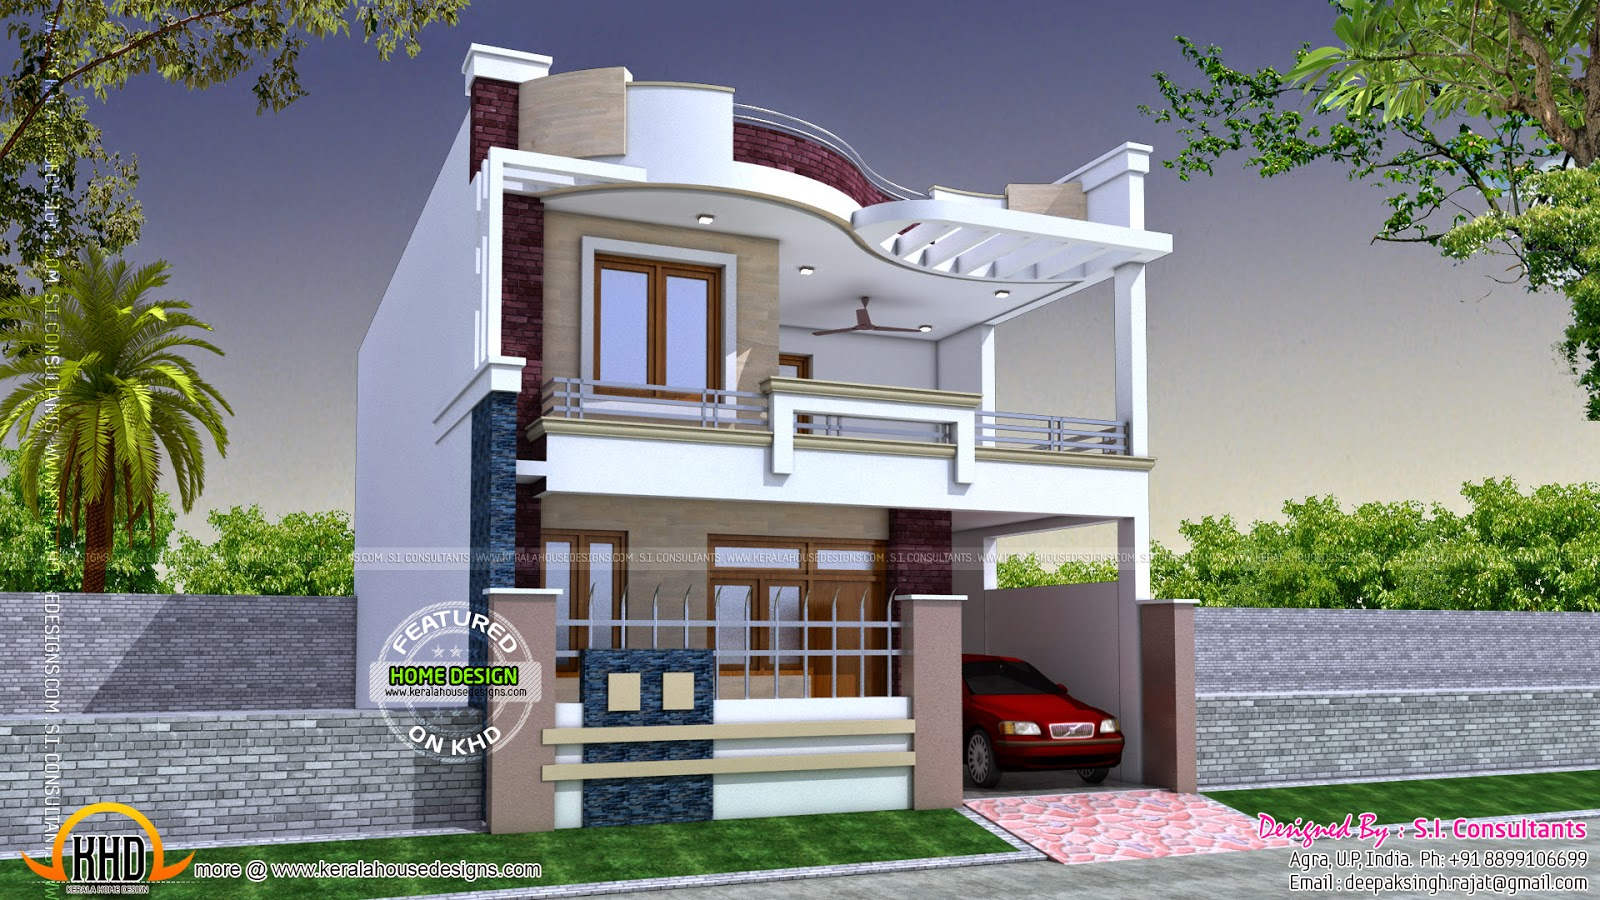 Modern indian home design kerala home design and floor plans for 2 bedroom house plans in india